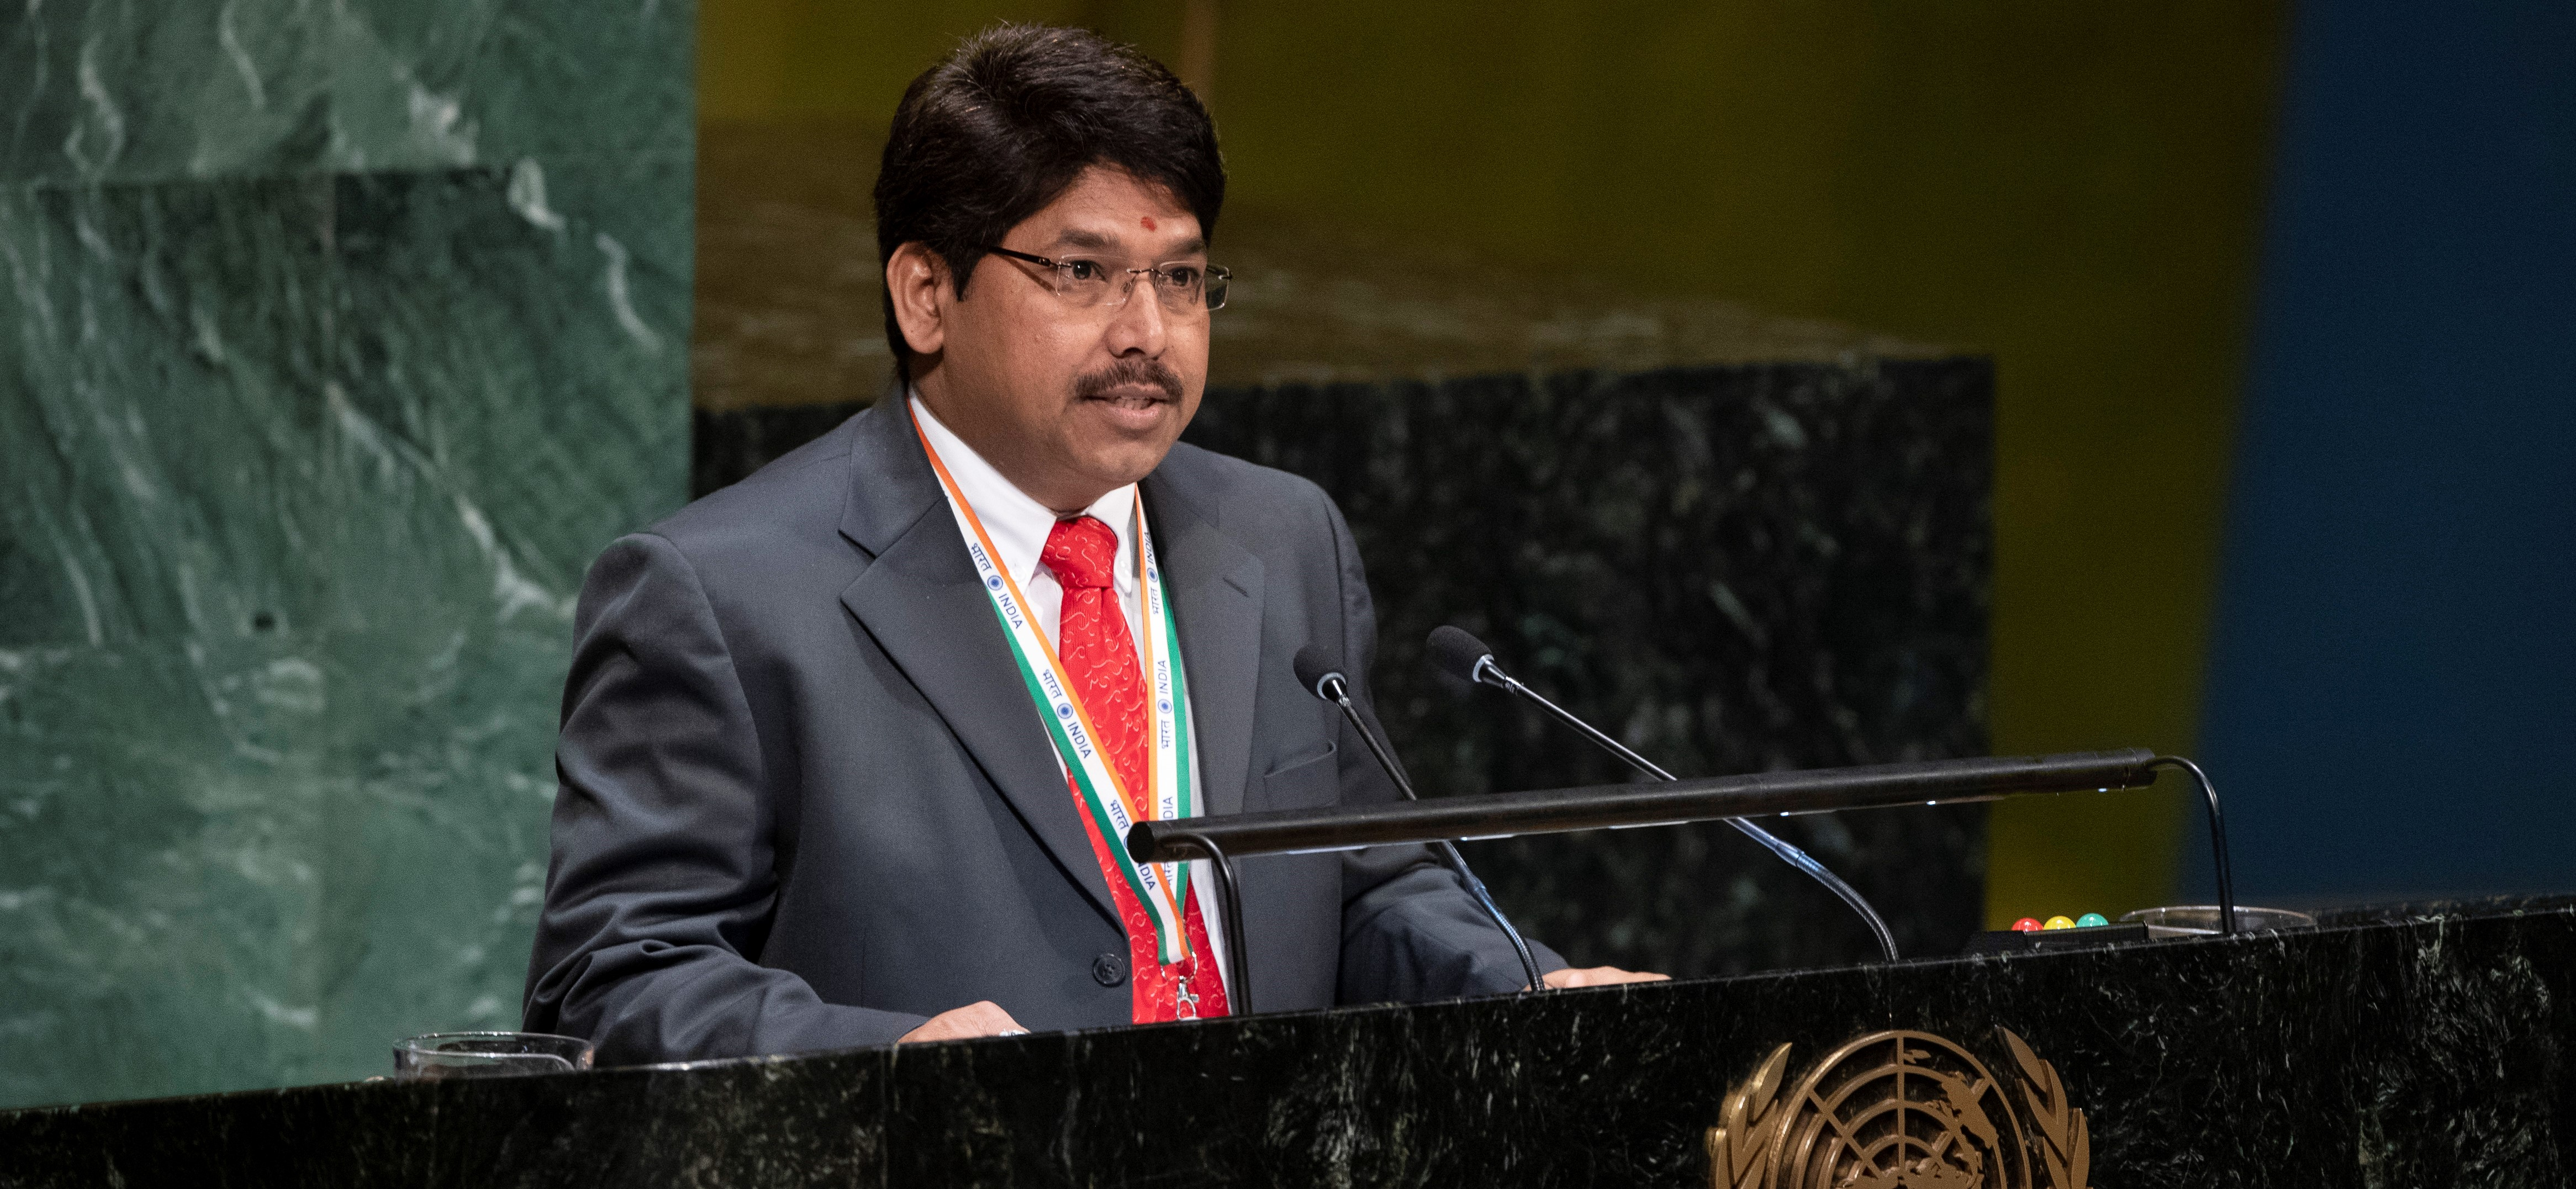 Statement by Mr. Yedla Umasankar, First Secretary/Legal Adviser at the UN General Assembly meeting <br> on Agenda Item 77 (a): Oceans and the Law of the Sea